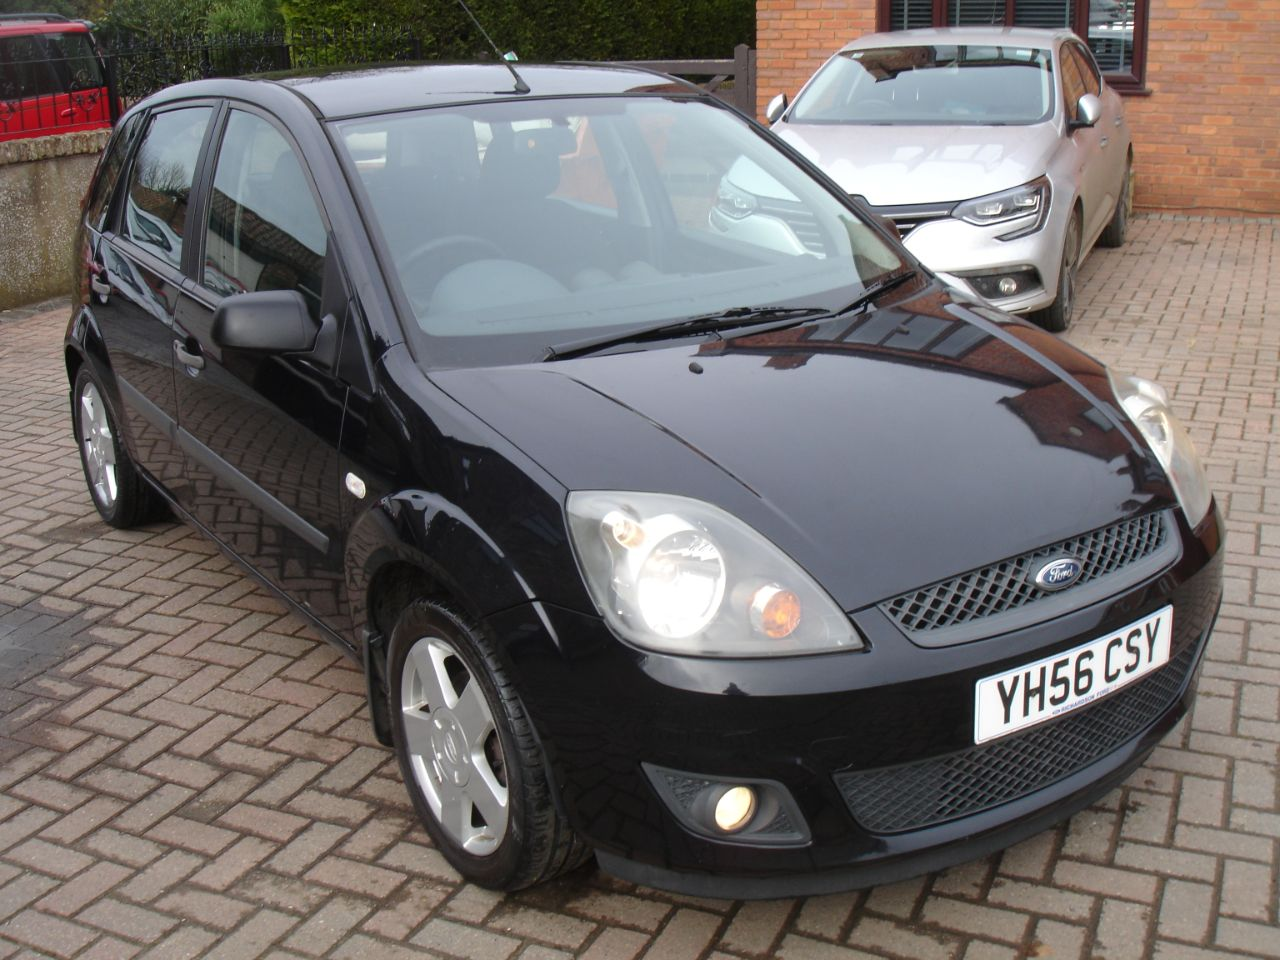 Ford Fiesta 1.4 TDCi Zetec 5dr [Climate] Hatchback Diesel Metallic Black at Level Pitch Selby